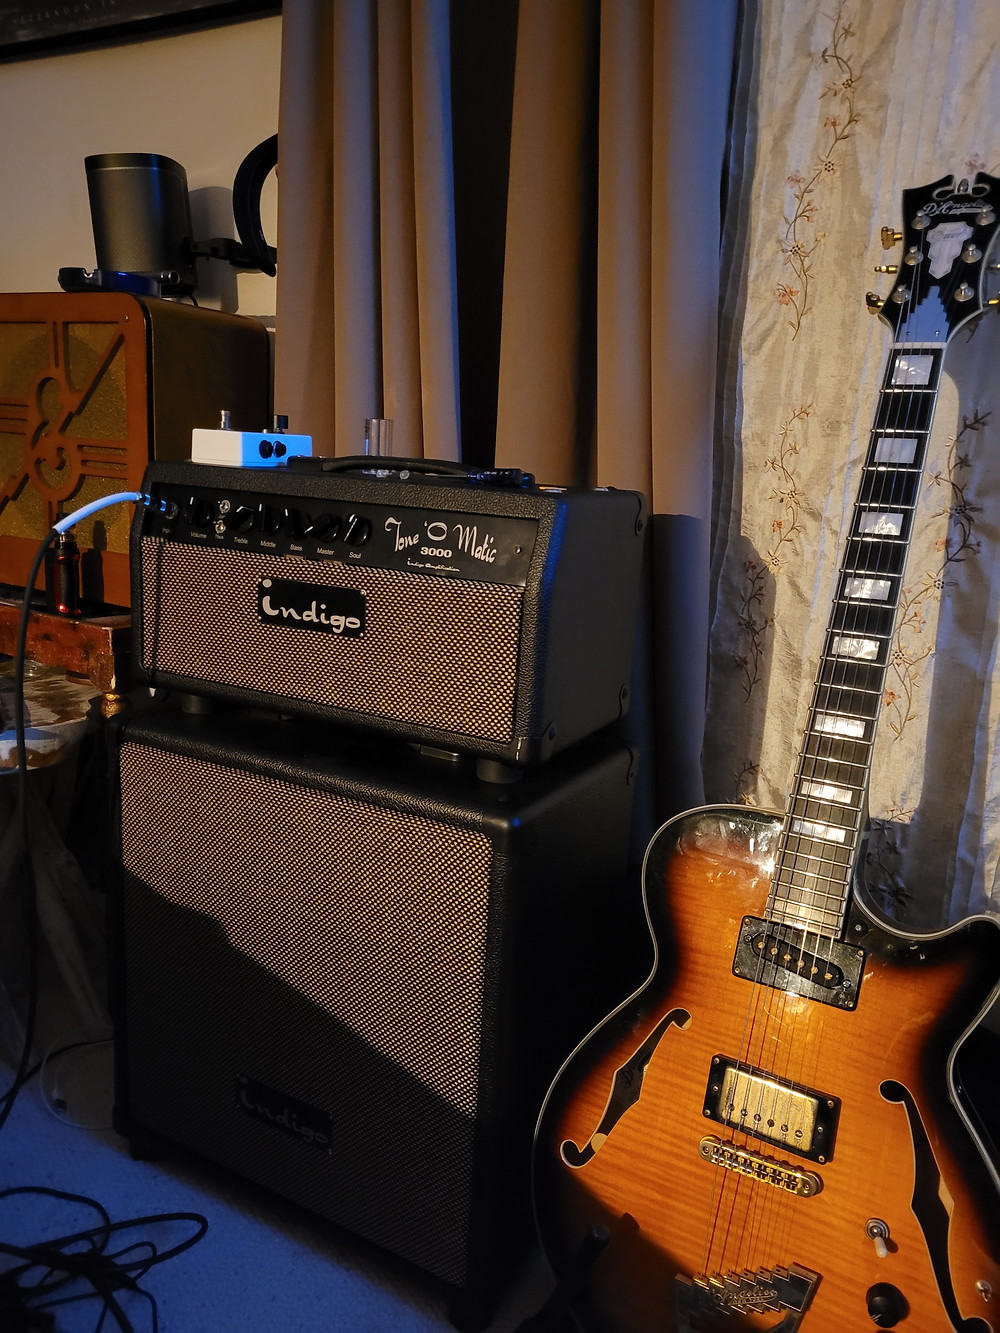 Indigo Amplification Tone-O-Matic 3000 and a D'angelico EXSS Excel